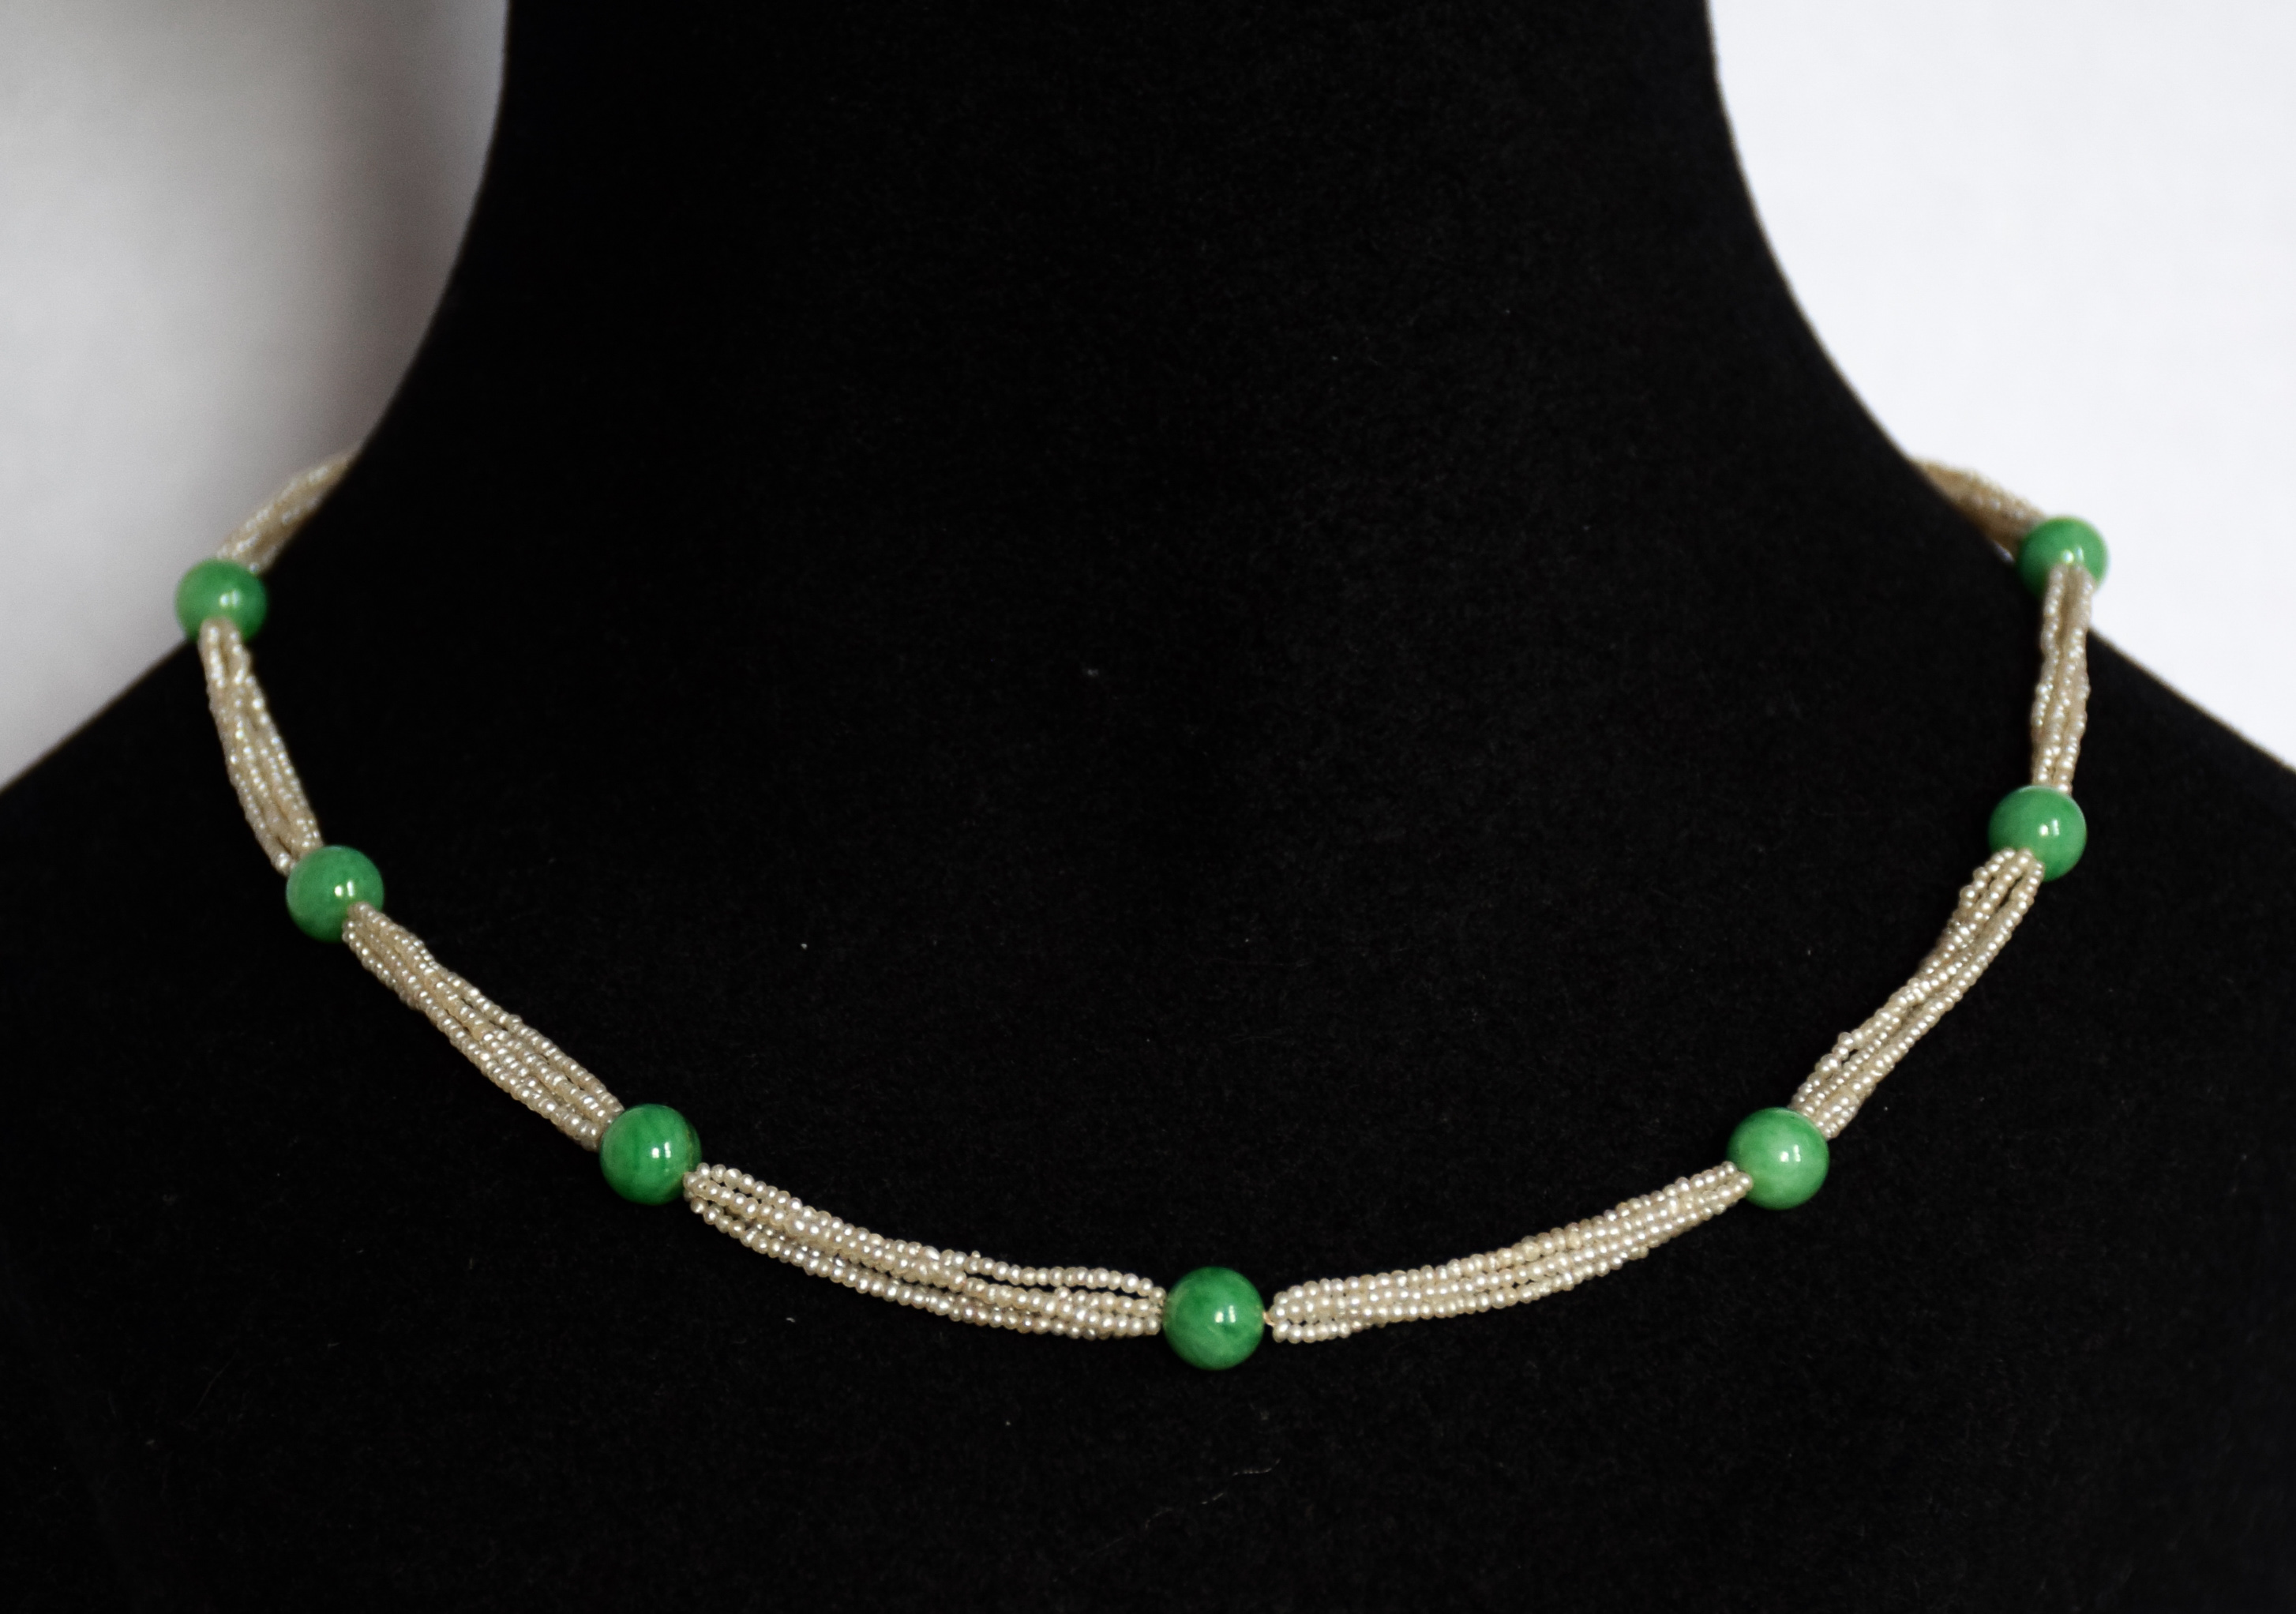 skgallery s ruby necklace jade lane vintage large gump gumps stunning jadeite item g